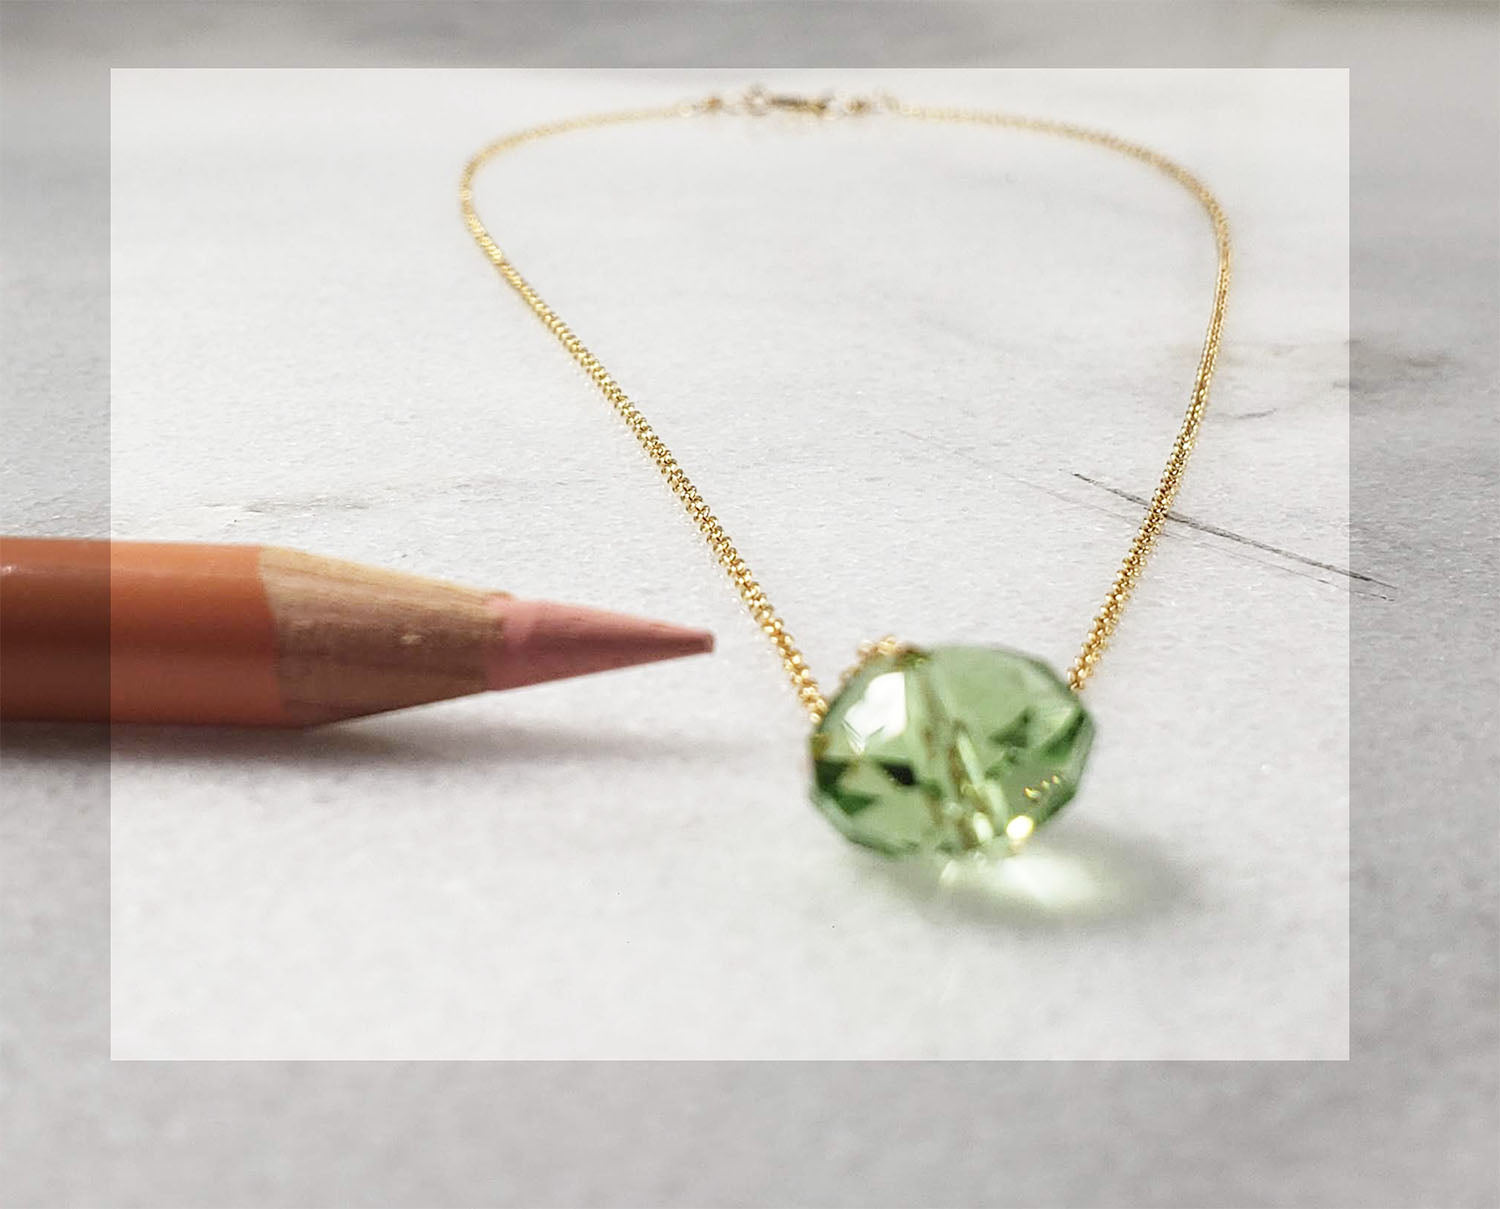 Minimalist Handmade  Peridot Crystal Pendant Necklace Personalized minimalist chains in Sterling Silver, Rose Gold or Gold,  single gemstone